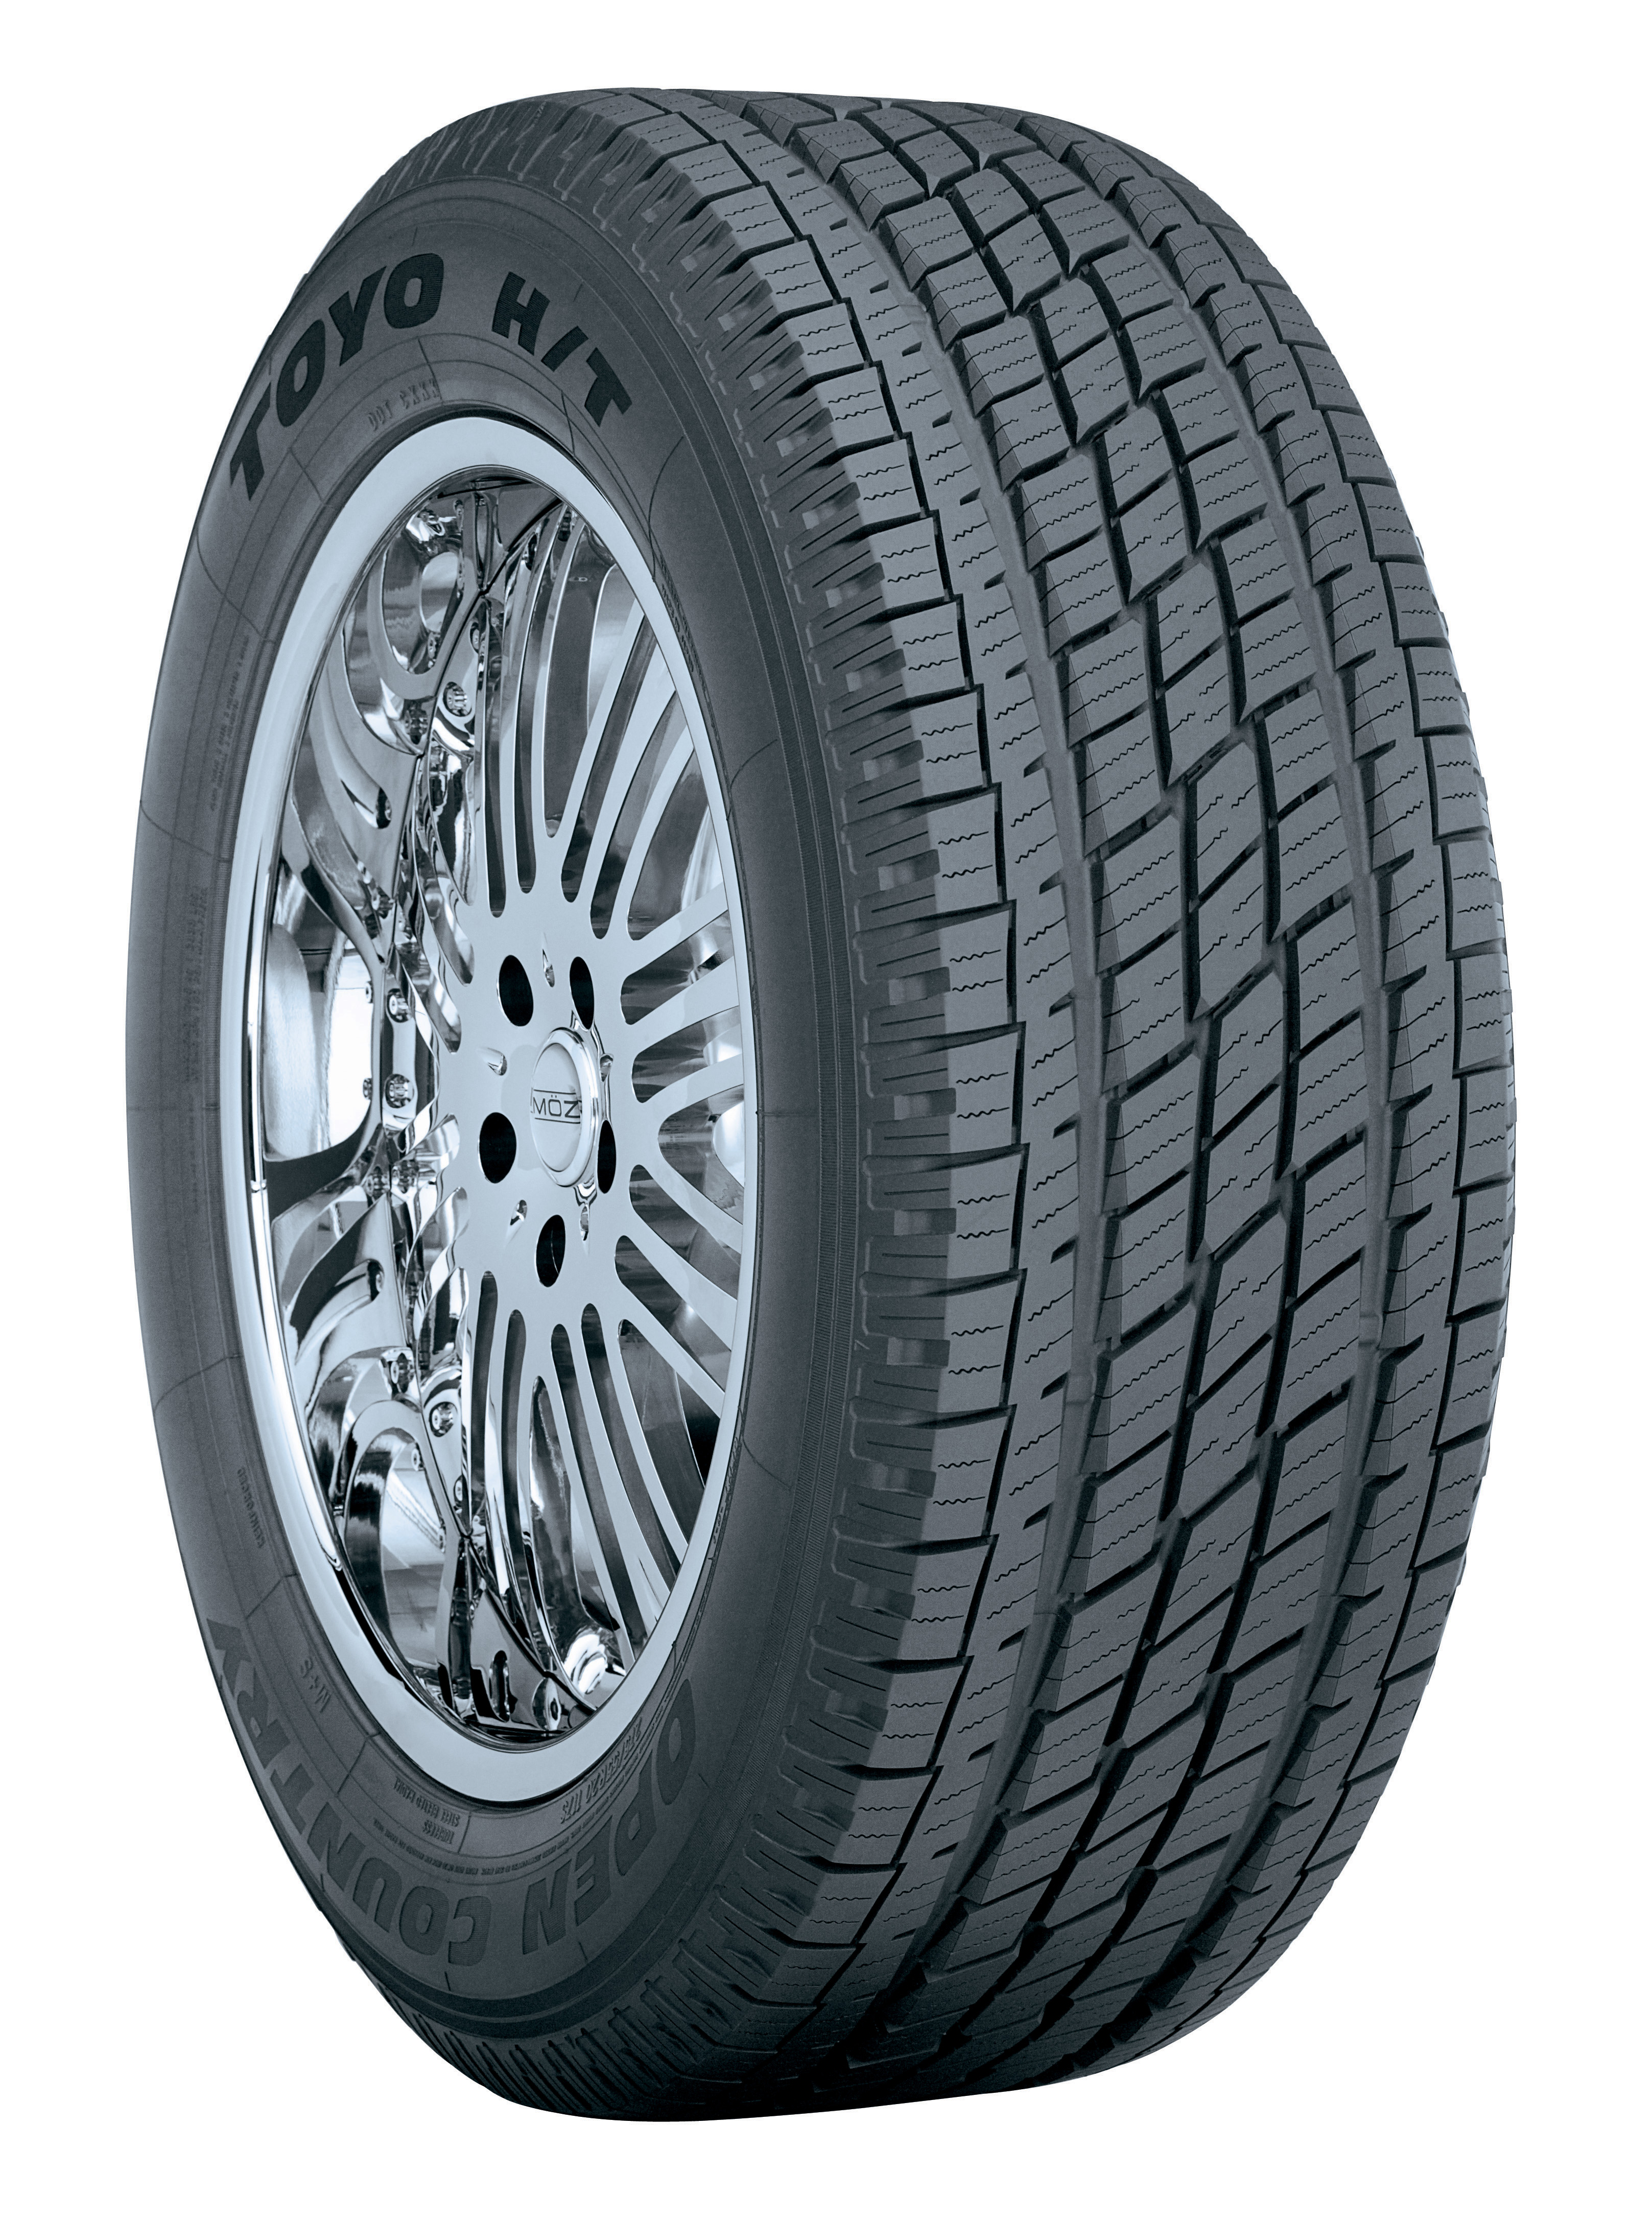 Toyo Proxes R888 >> Press | Toyo Tires | Press | Toyo Tires